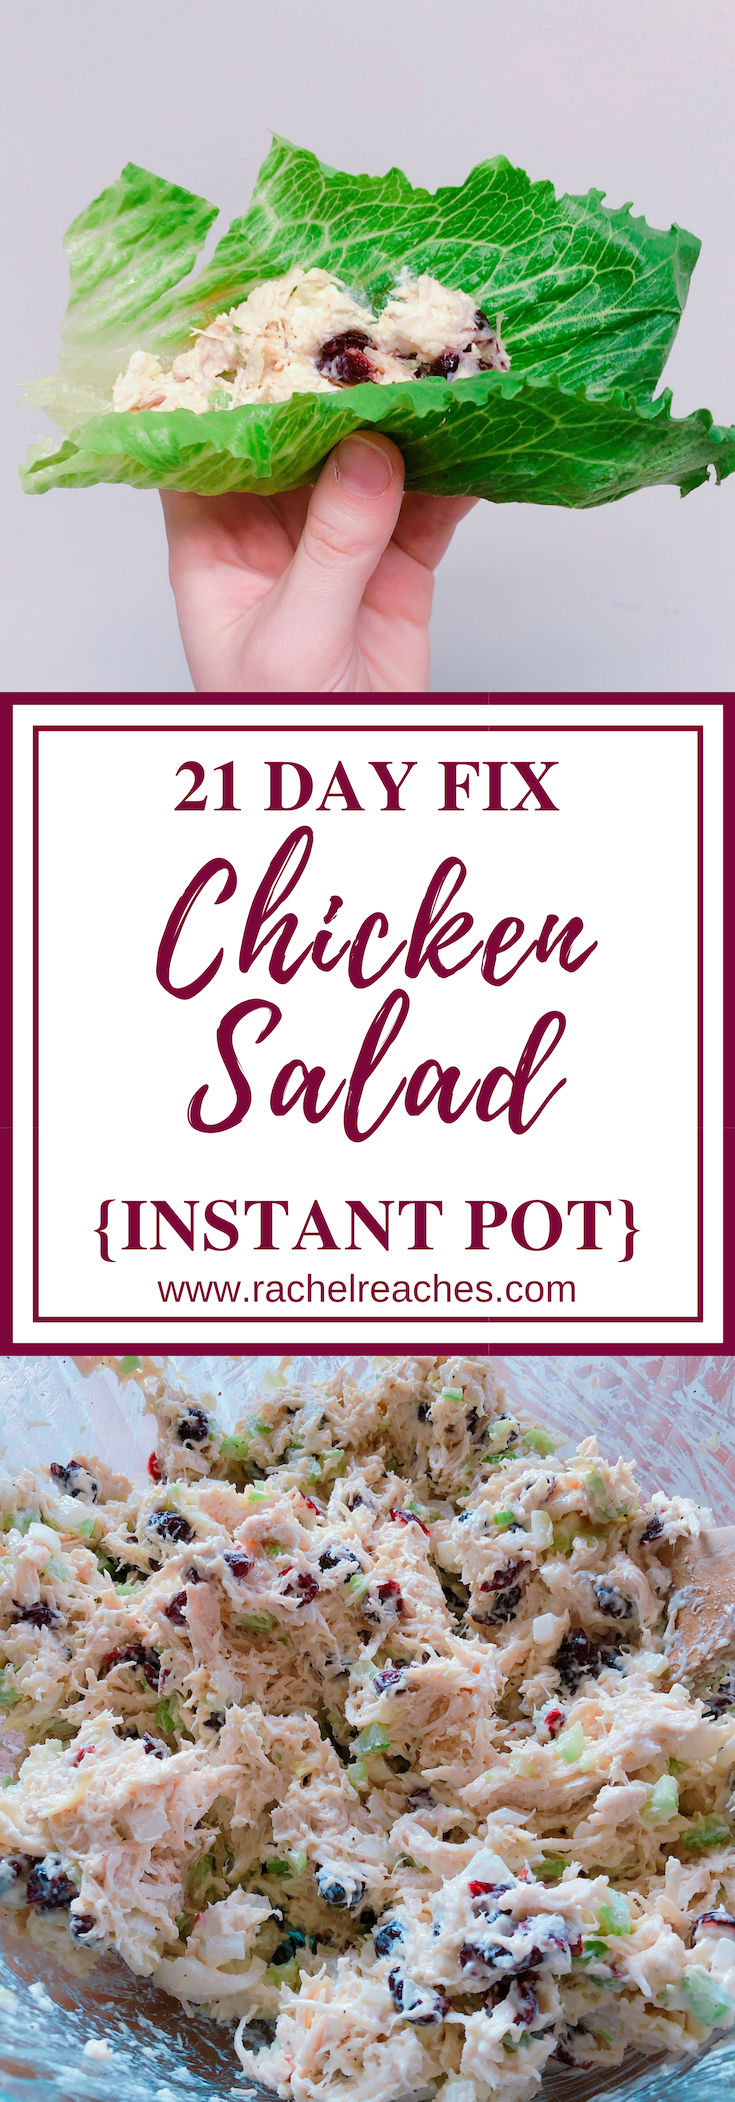 Instant Pot Chicken Salad Pin - 21 Day Fix.png